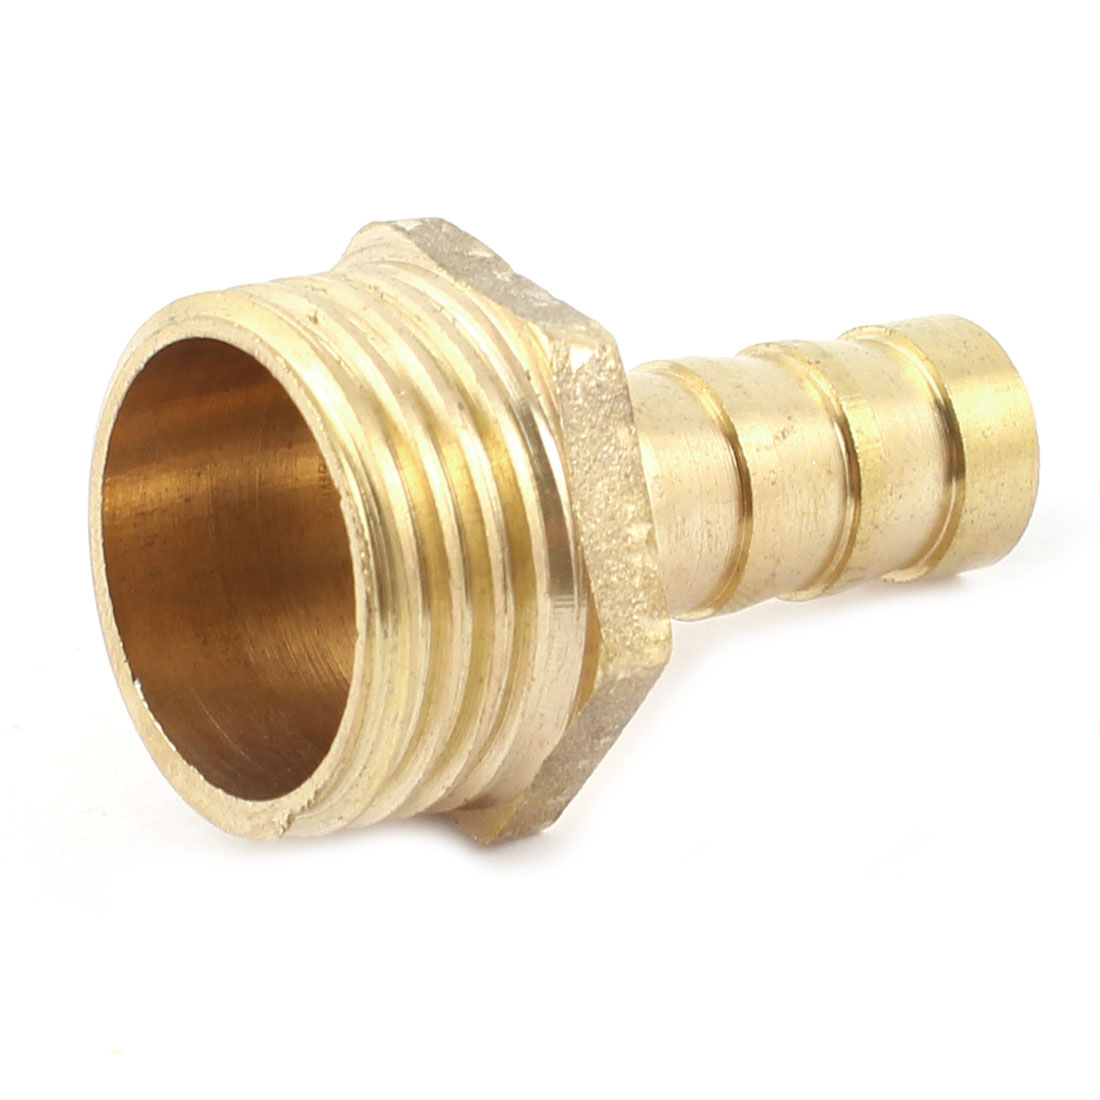 10mm Hose Barb to 1/2PT Male Thread Pneumatic Connector Coupler